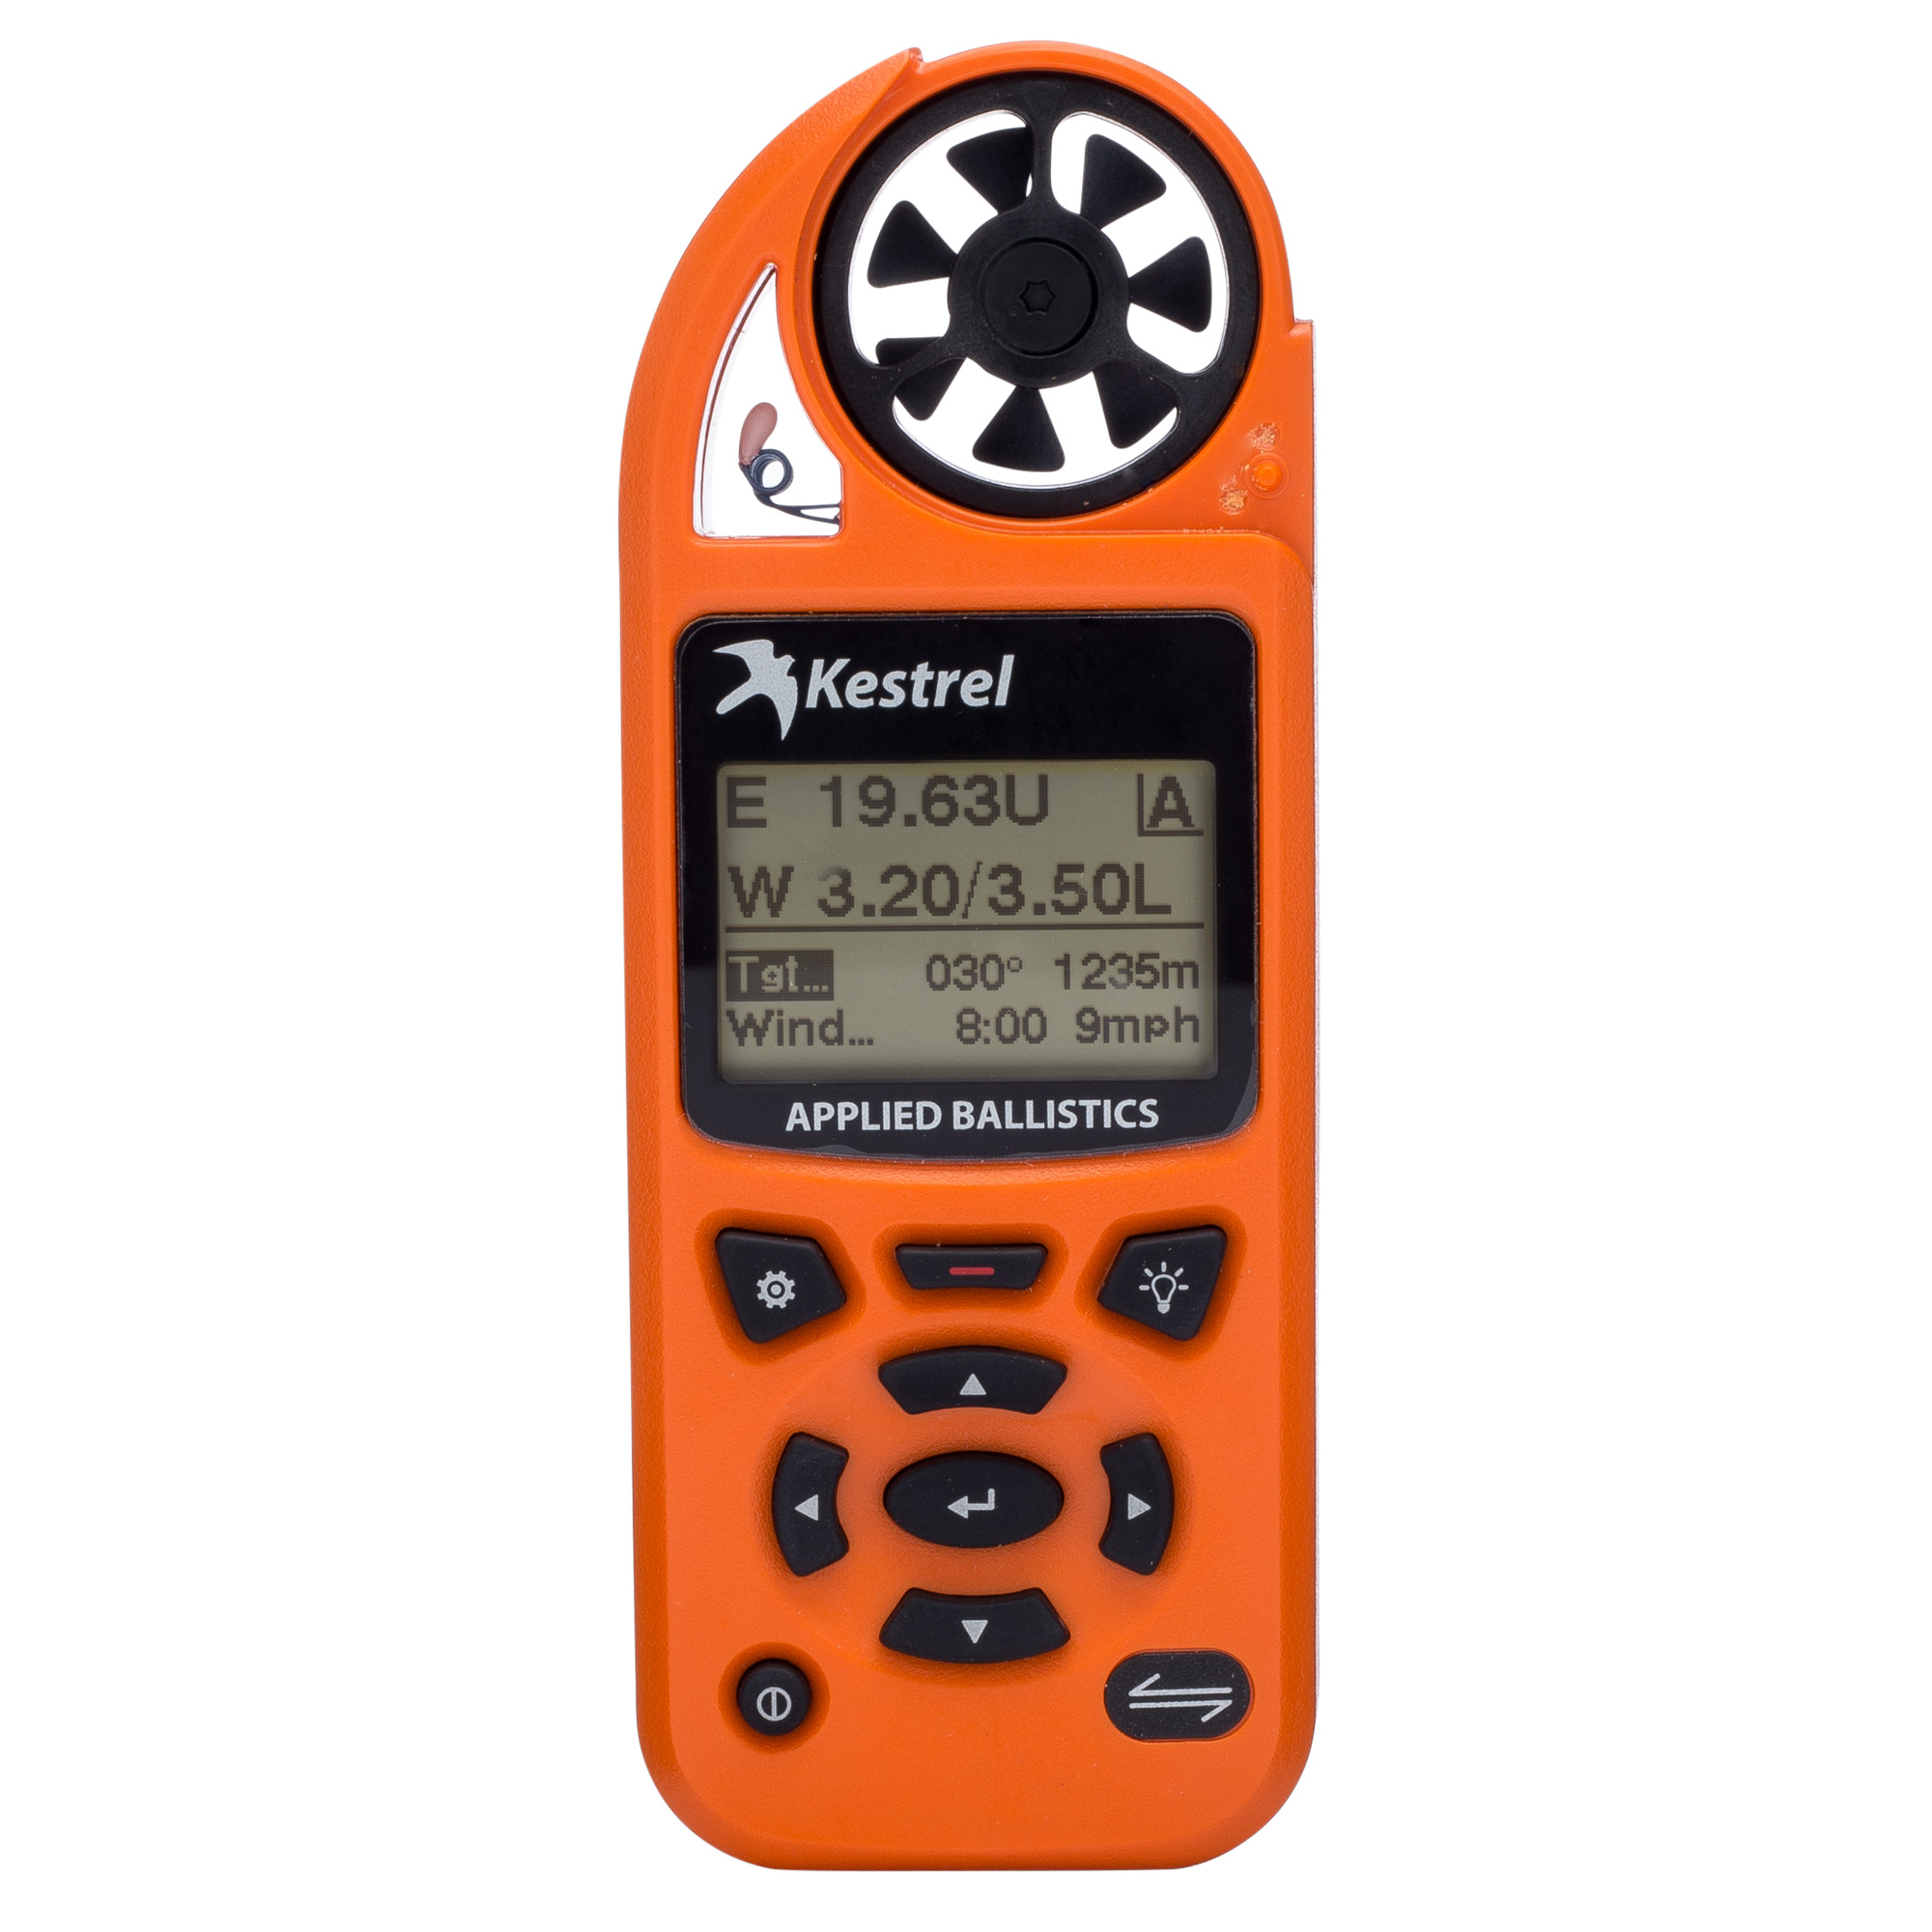 "The Kestrel 5700 Elite Weather Meter with Applied Ballistics is a comprehensive weather meter for measurement and logging of primary environmental conditions"" including wind speed and direction"" temperature"" humidity"" heat index"" pressure"" and altitude. It also contains a powerful ballistics calculator to help you hit your long-range shot on the first try. This meter employs the Applied Ballistics bullet library of custom drag models"" an exact measurement of your bullet's drag profile plus corrections for Aerodynamic Jump"" Spin Drift"" Coriolis"" and Drop Scale Factoring to achieve accurate extended long-range shots."